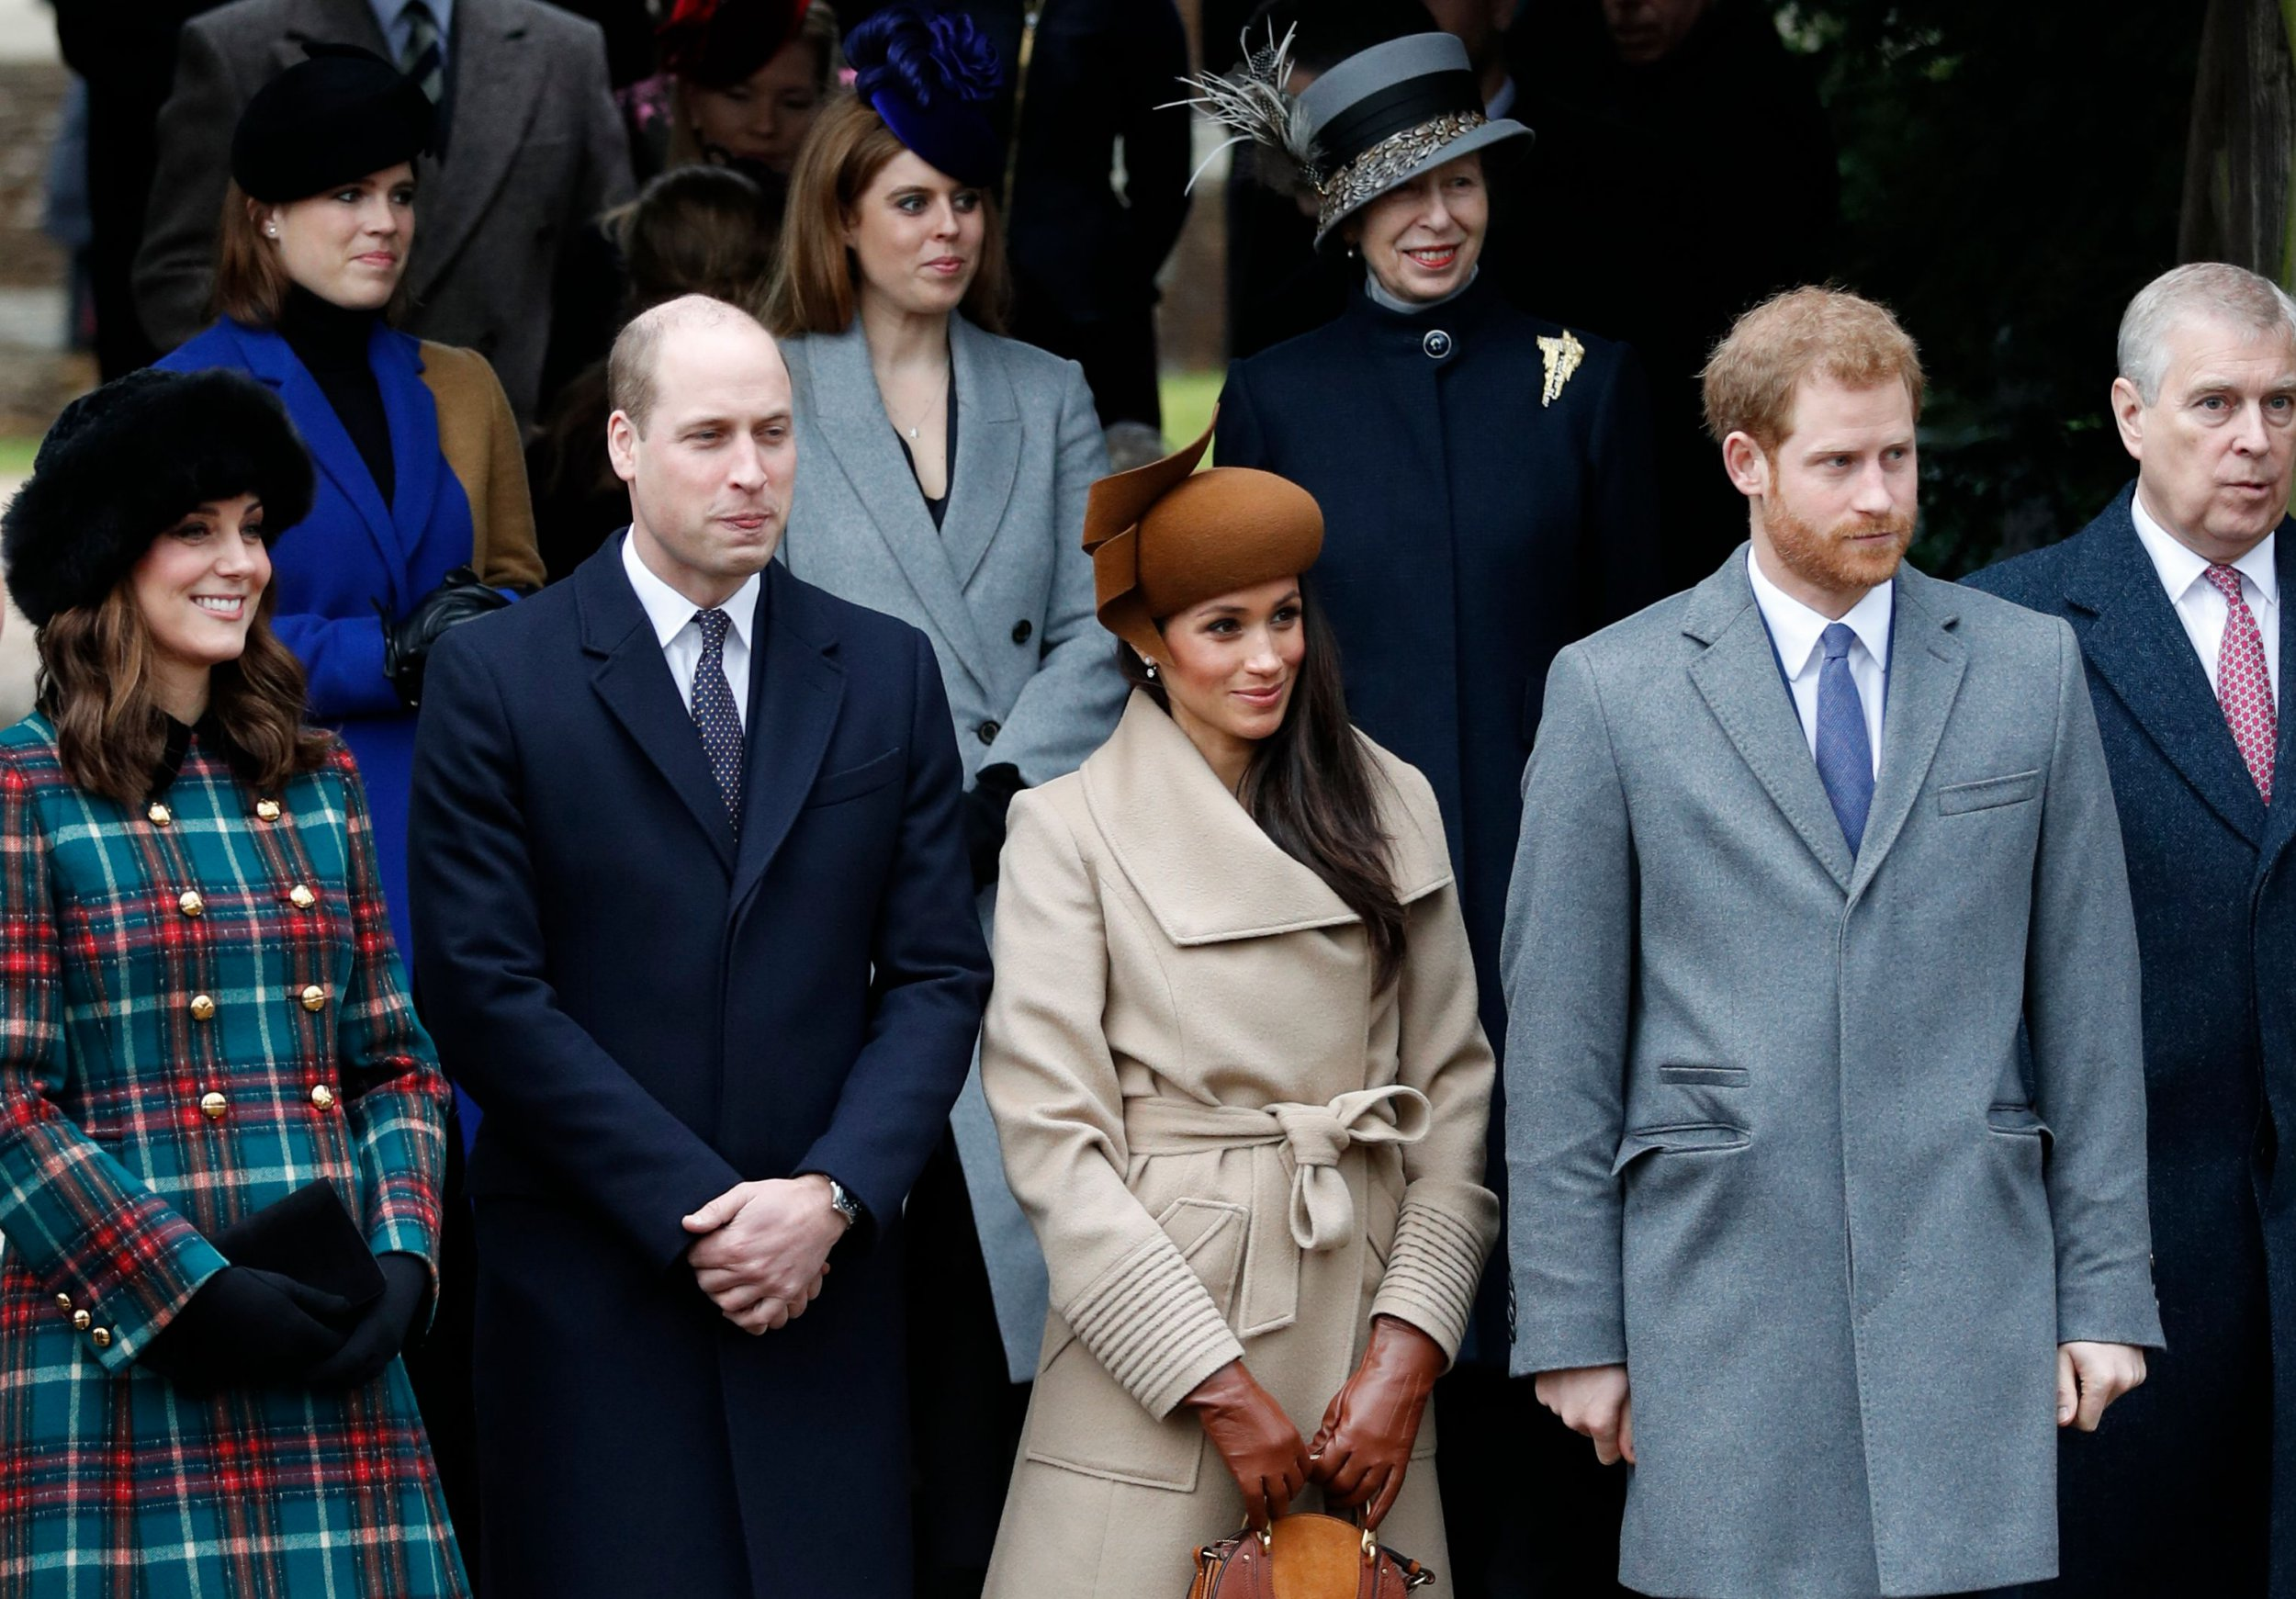 Britain's Catherine, Duchess of Cambridge, (L) and Britain's Prince William, Duke of Cambridge, (2L), US actress and fiancee of Britain's Prince Harry Meghan Markle (2R) and Britain's Prince Harry (R) stand together as they wait to see off Britain's Queen Elizabeth II after attending the Royal Family's traditional Christmas Day church service at St Mary Magdalene Church in Sandringham, Norfolk, eastern England, on December 25, 2017. / AFP PHOTO / Adrian DENNIS (Photo credit should read ADRIAN DENNIS/AFP/Getty Images)